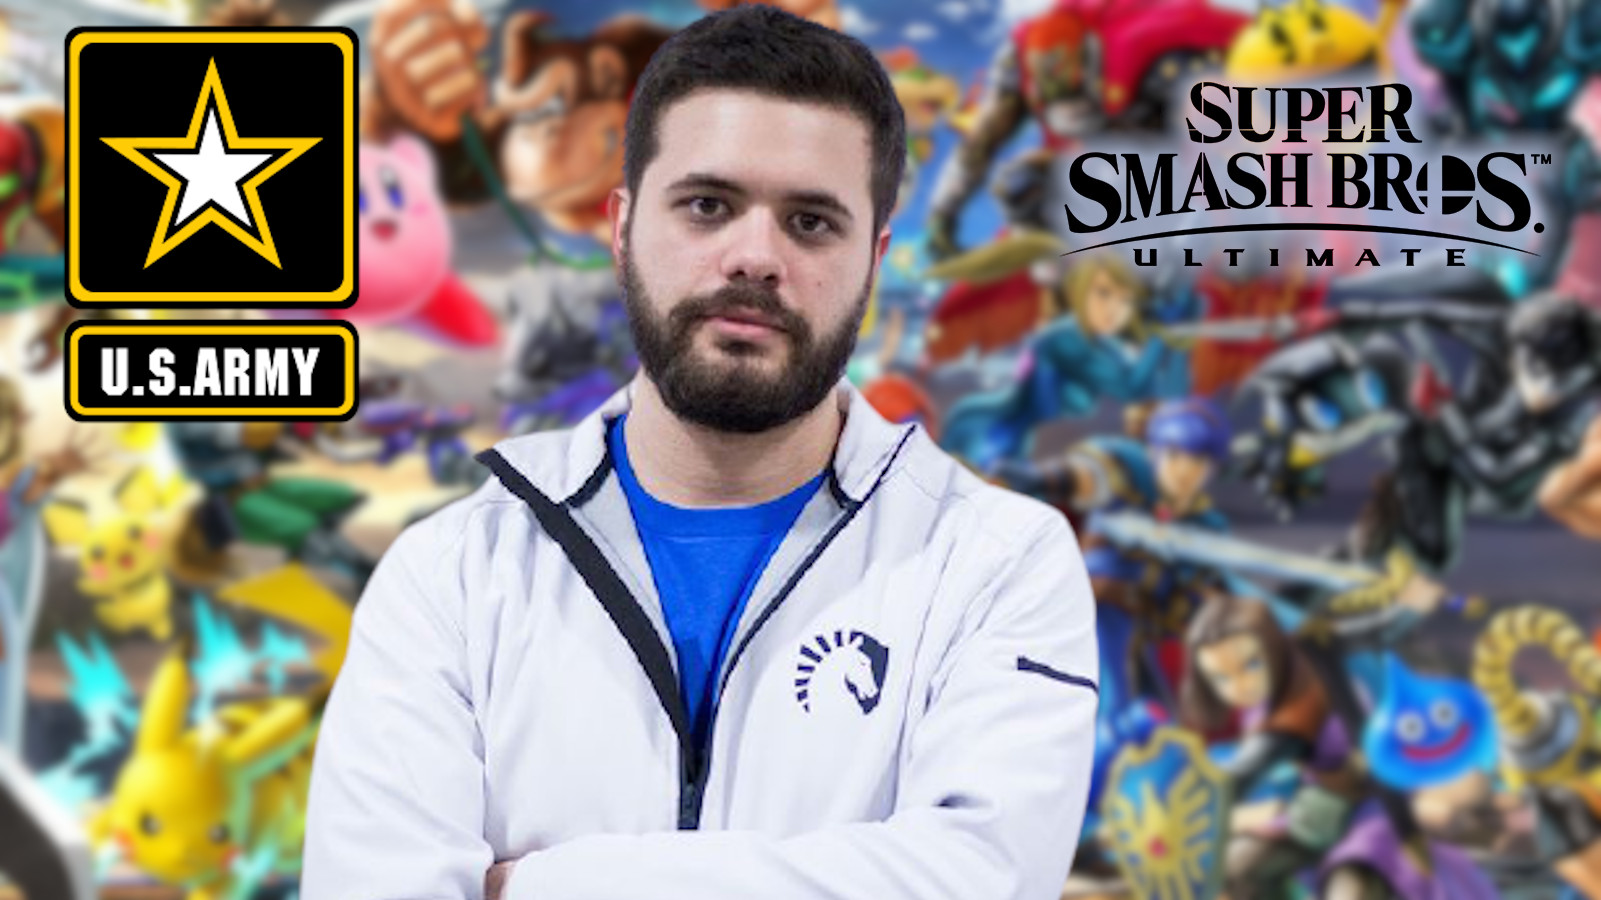 Hungrybox quits US Army Smash event